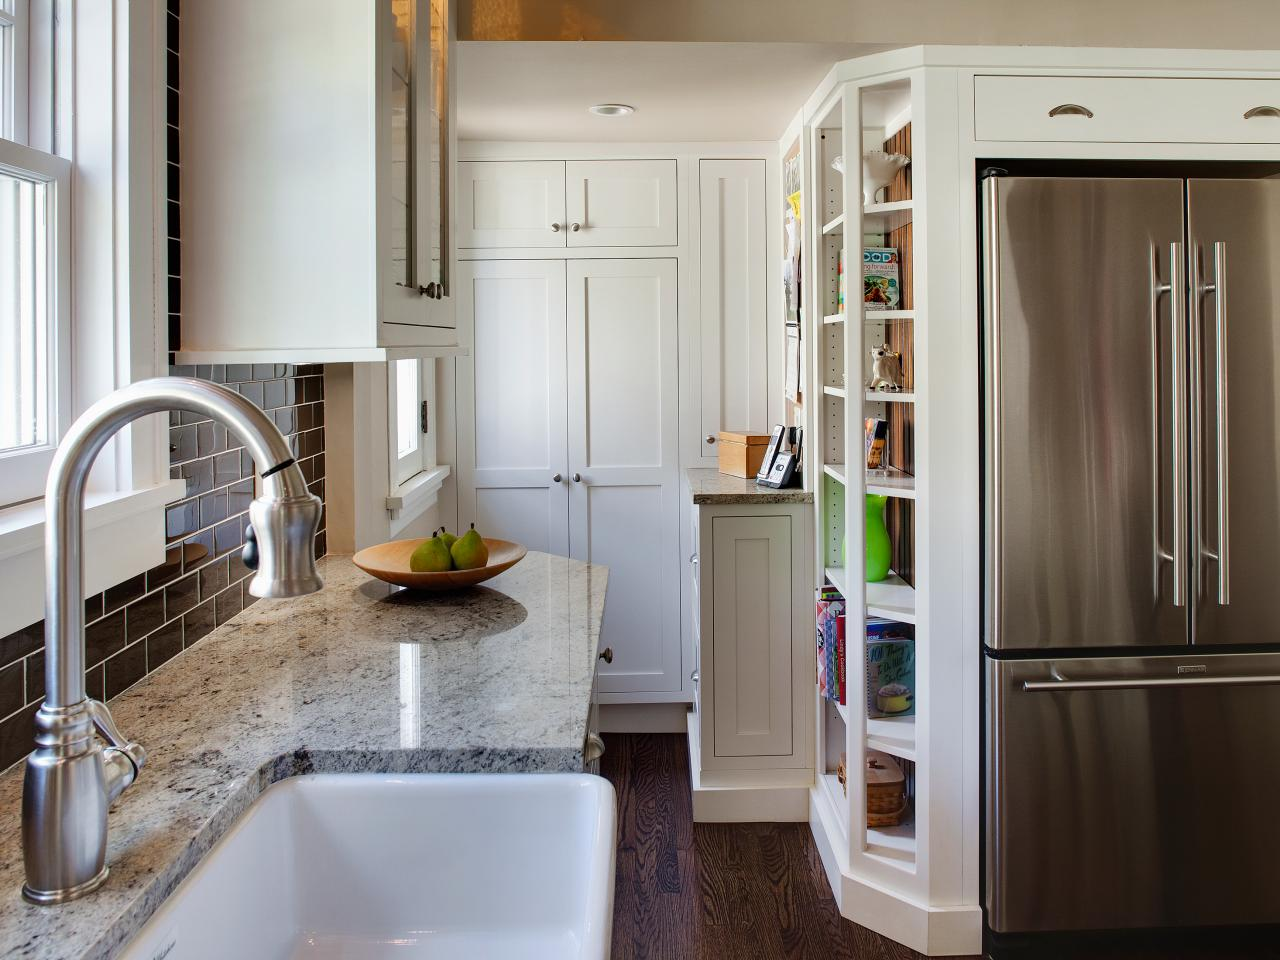 Narrow Kitchen Ideas Home very small kitchen ideas: pictures & tips from hgtv | hgtv